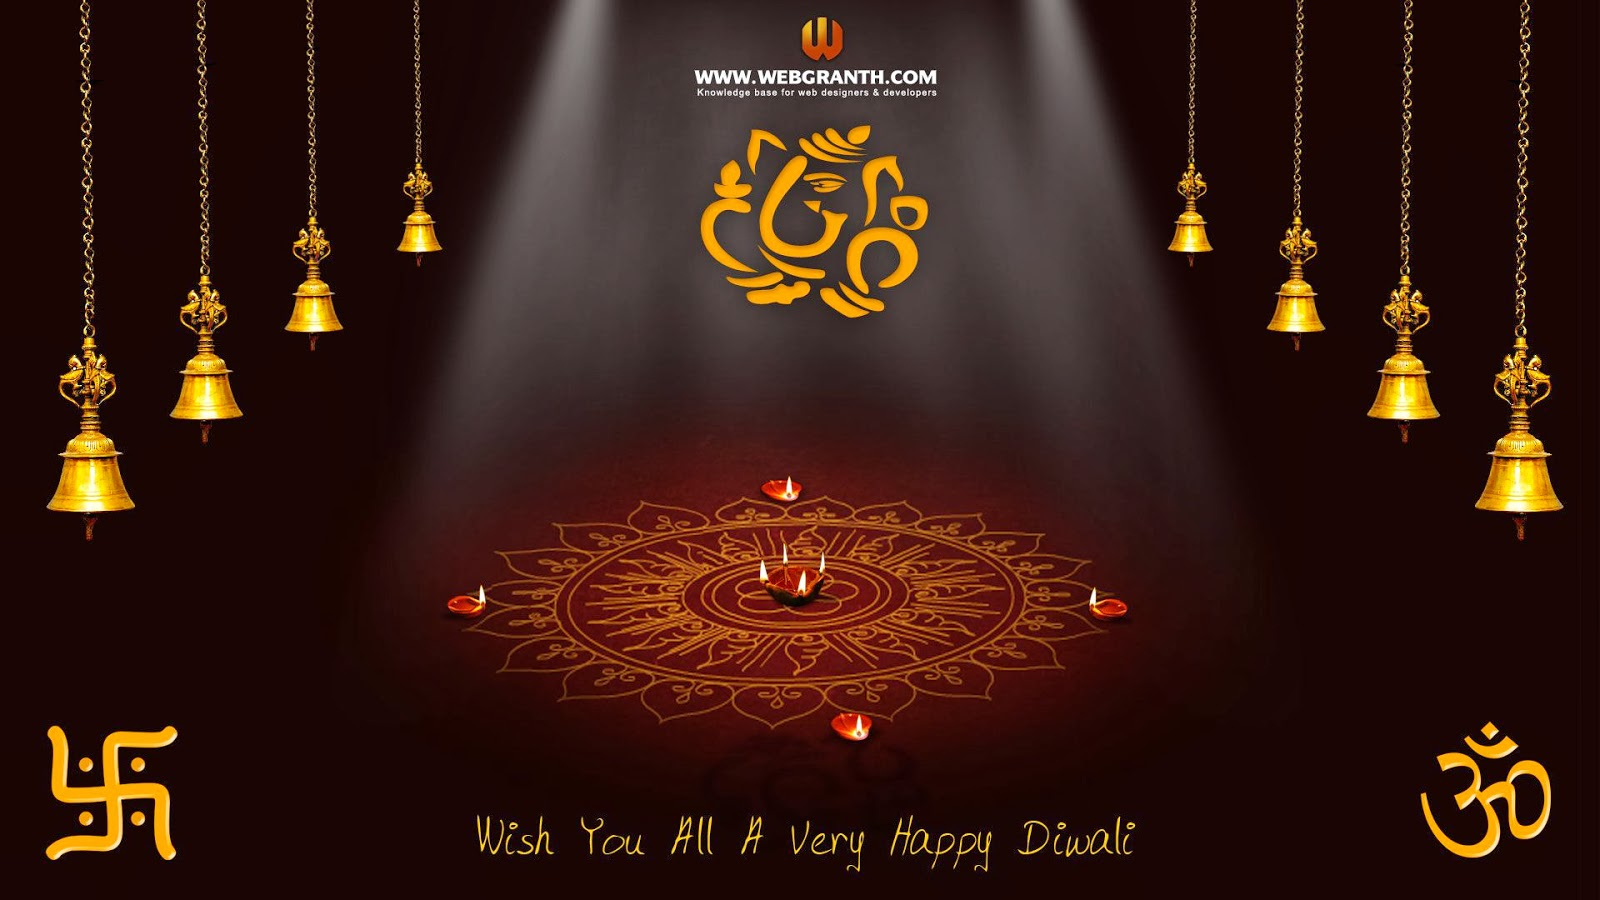 Diwali wishes greetings images choice image greeting card examples beautiful diwali greeting card designs and backgrounds for your beautiful diwali greeting card designs and backgrounds kristyandbryce Gallery